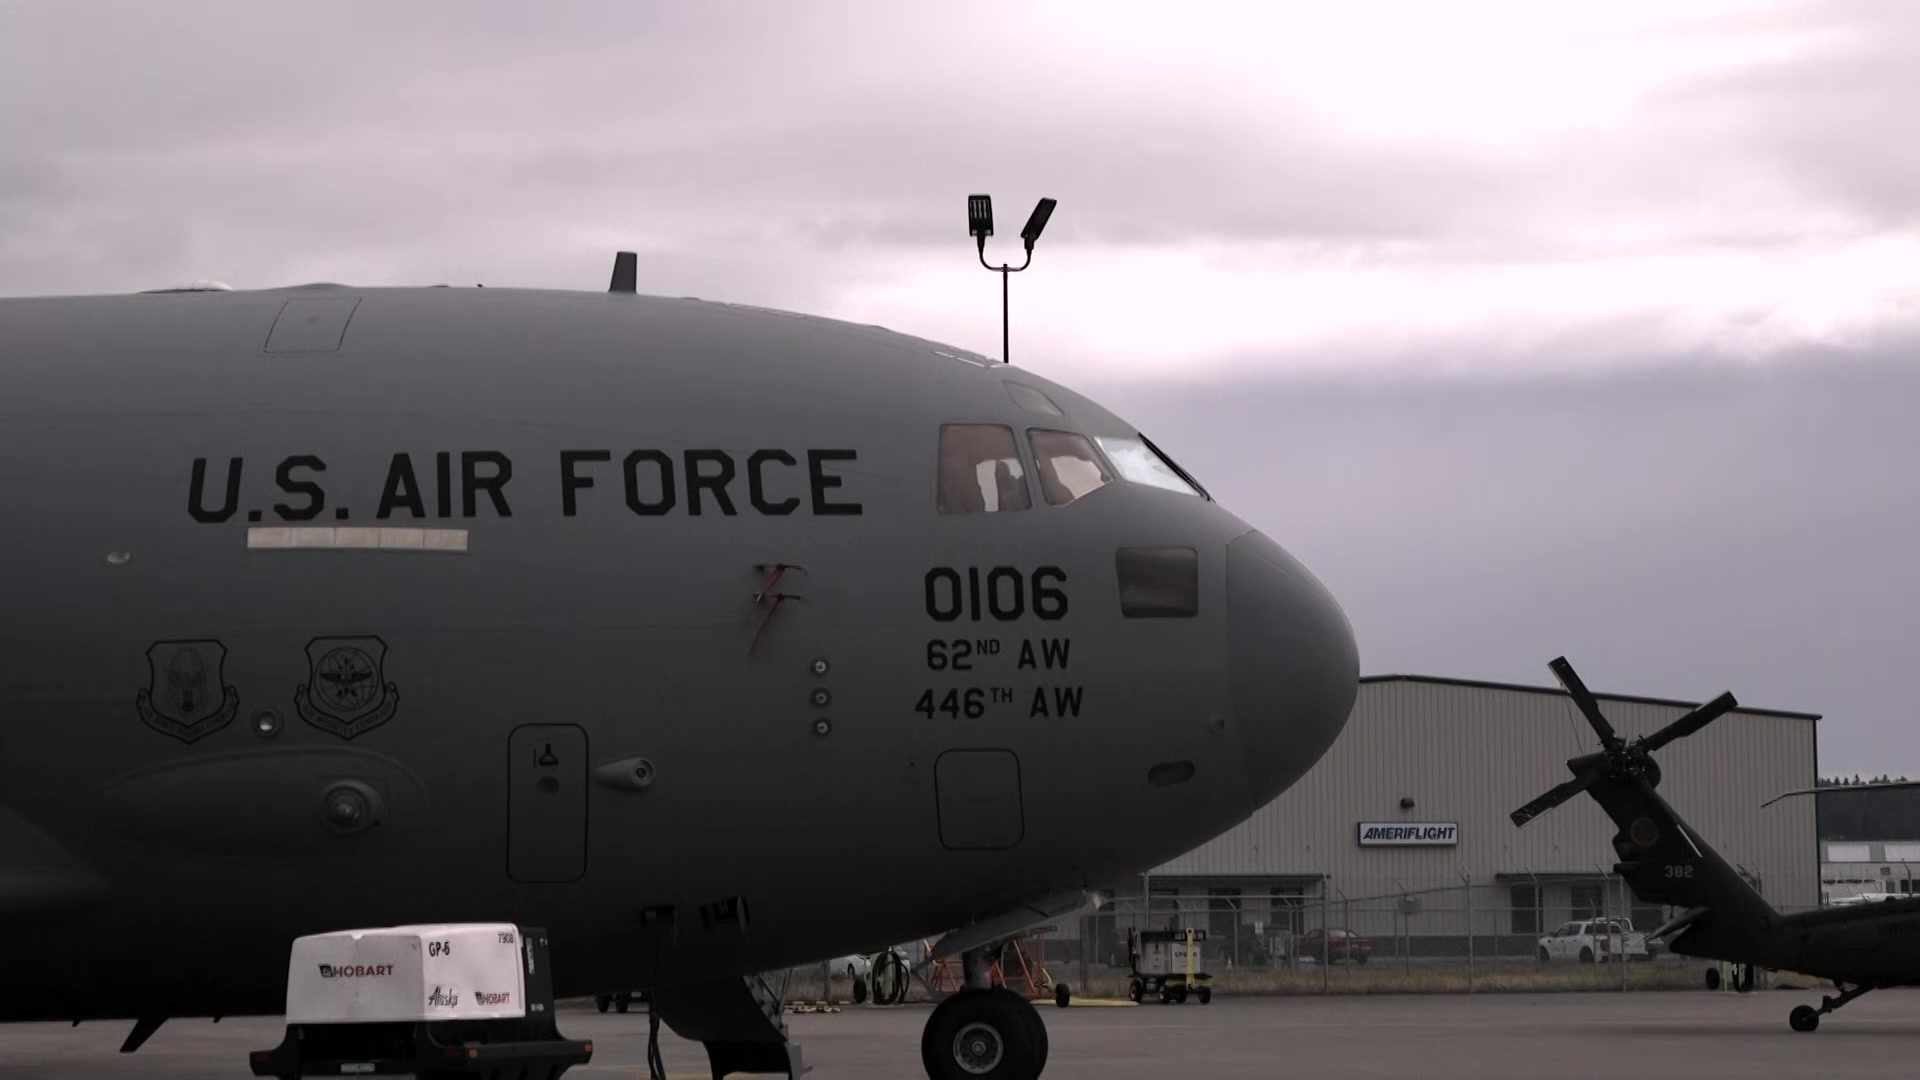 Rainier Wing Airmen participate in the 2019 Alaska Airlines Aviation Day in Portland, Ore. on May 18.